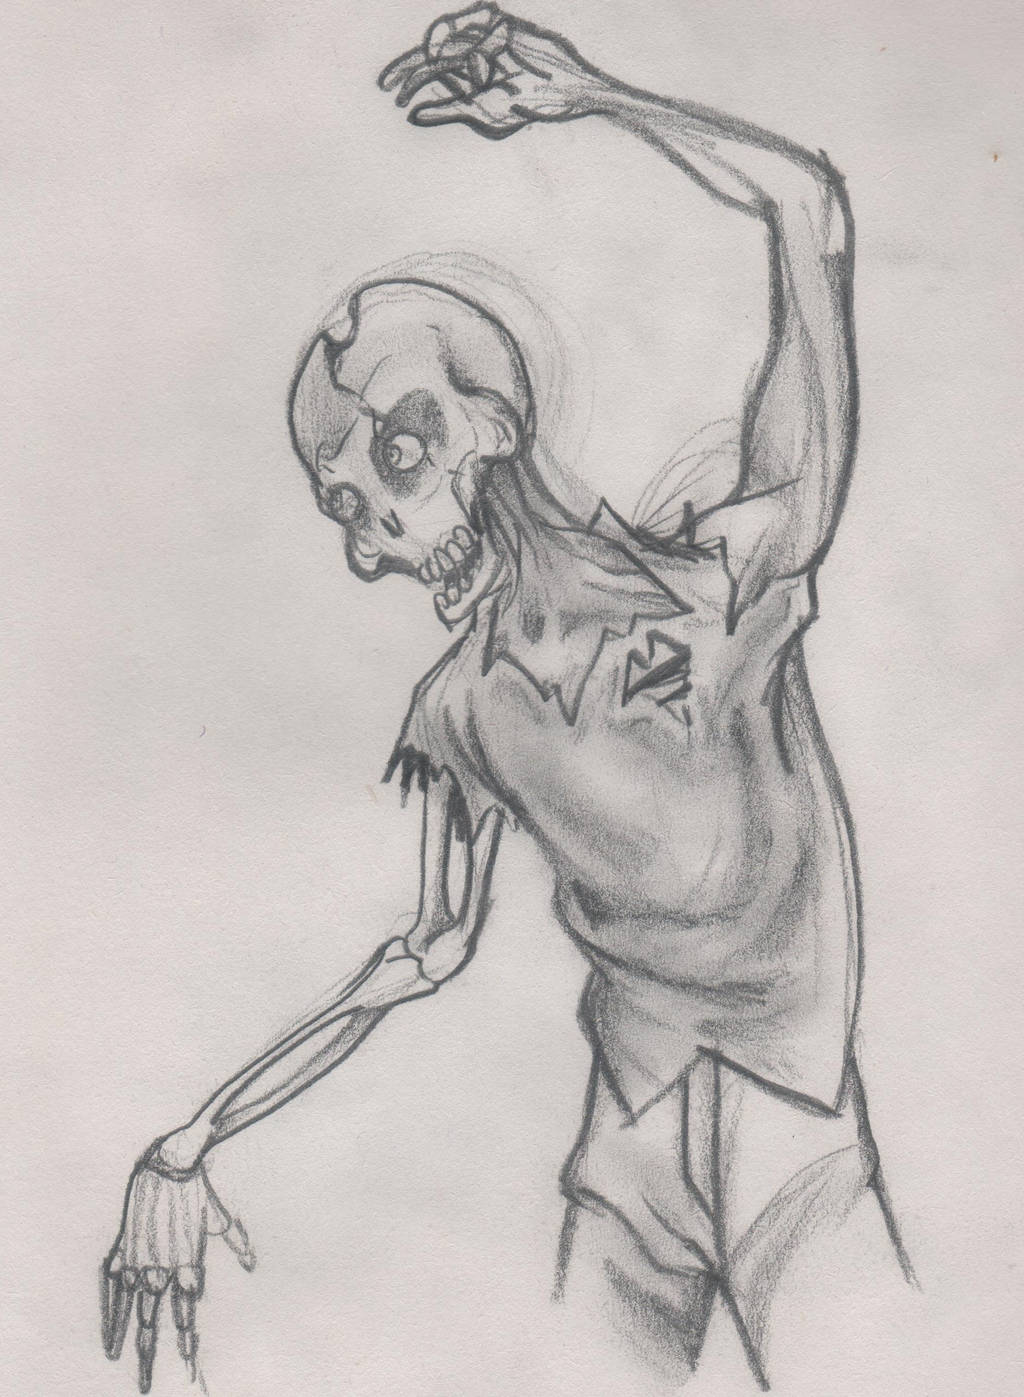 Zombie drawing (old drawing) by Helghast0